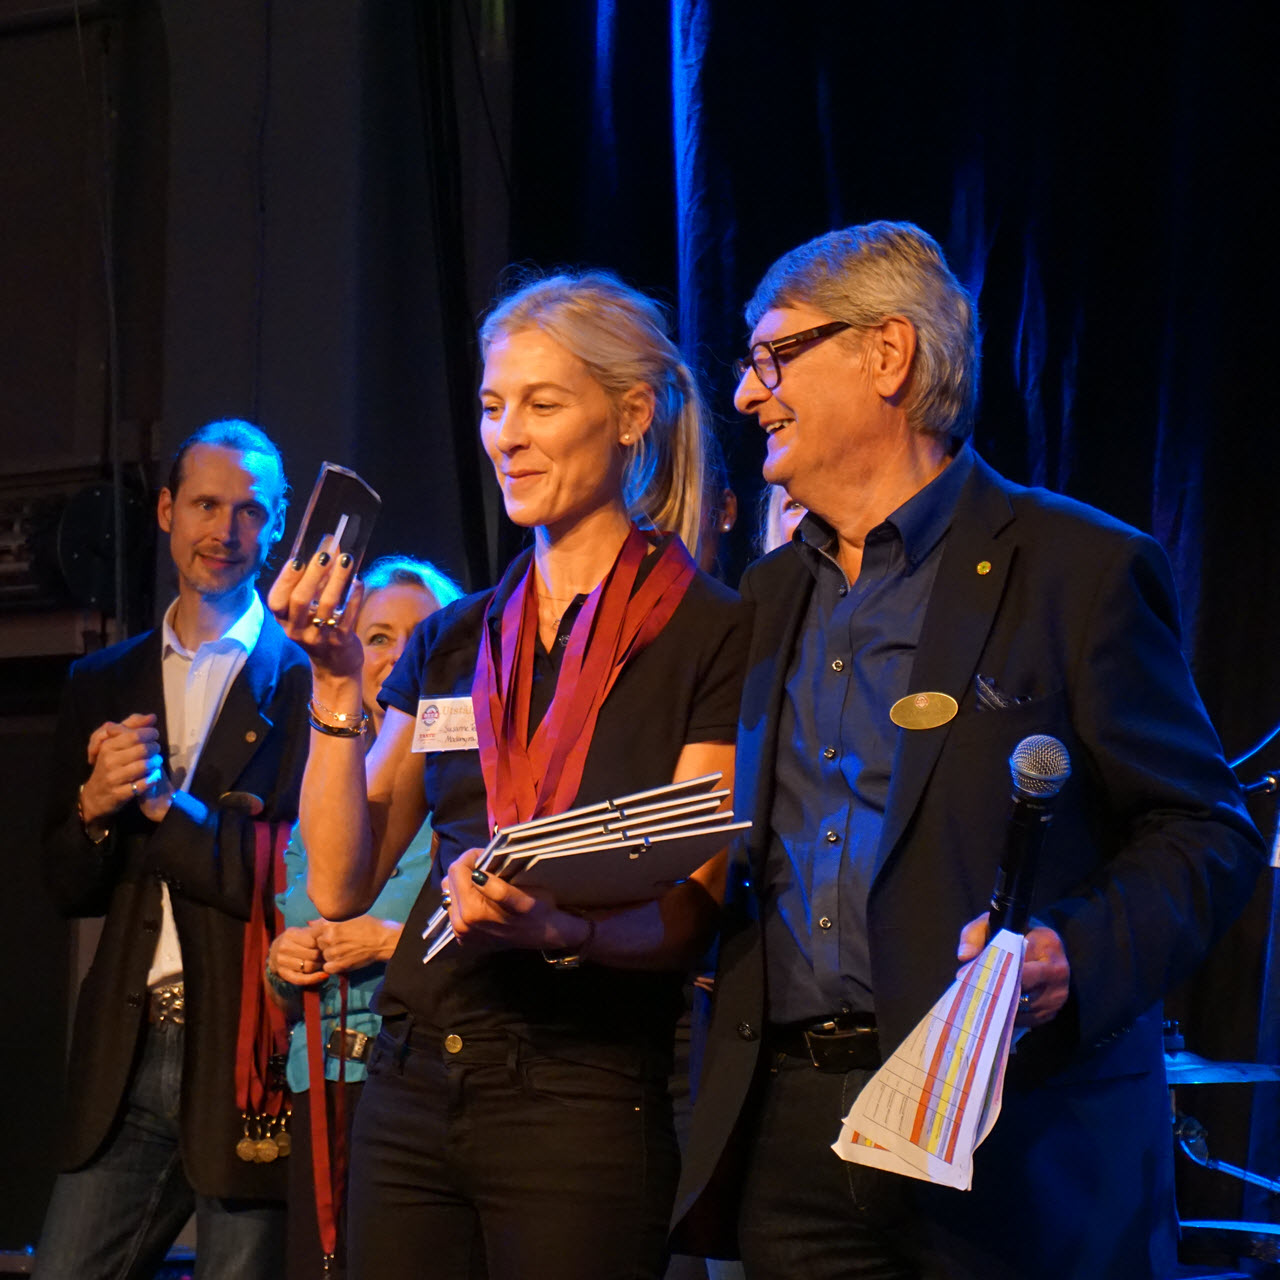 Stockholm Beer and Whisky Festival - the whisky awards